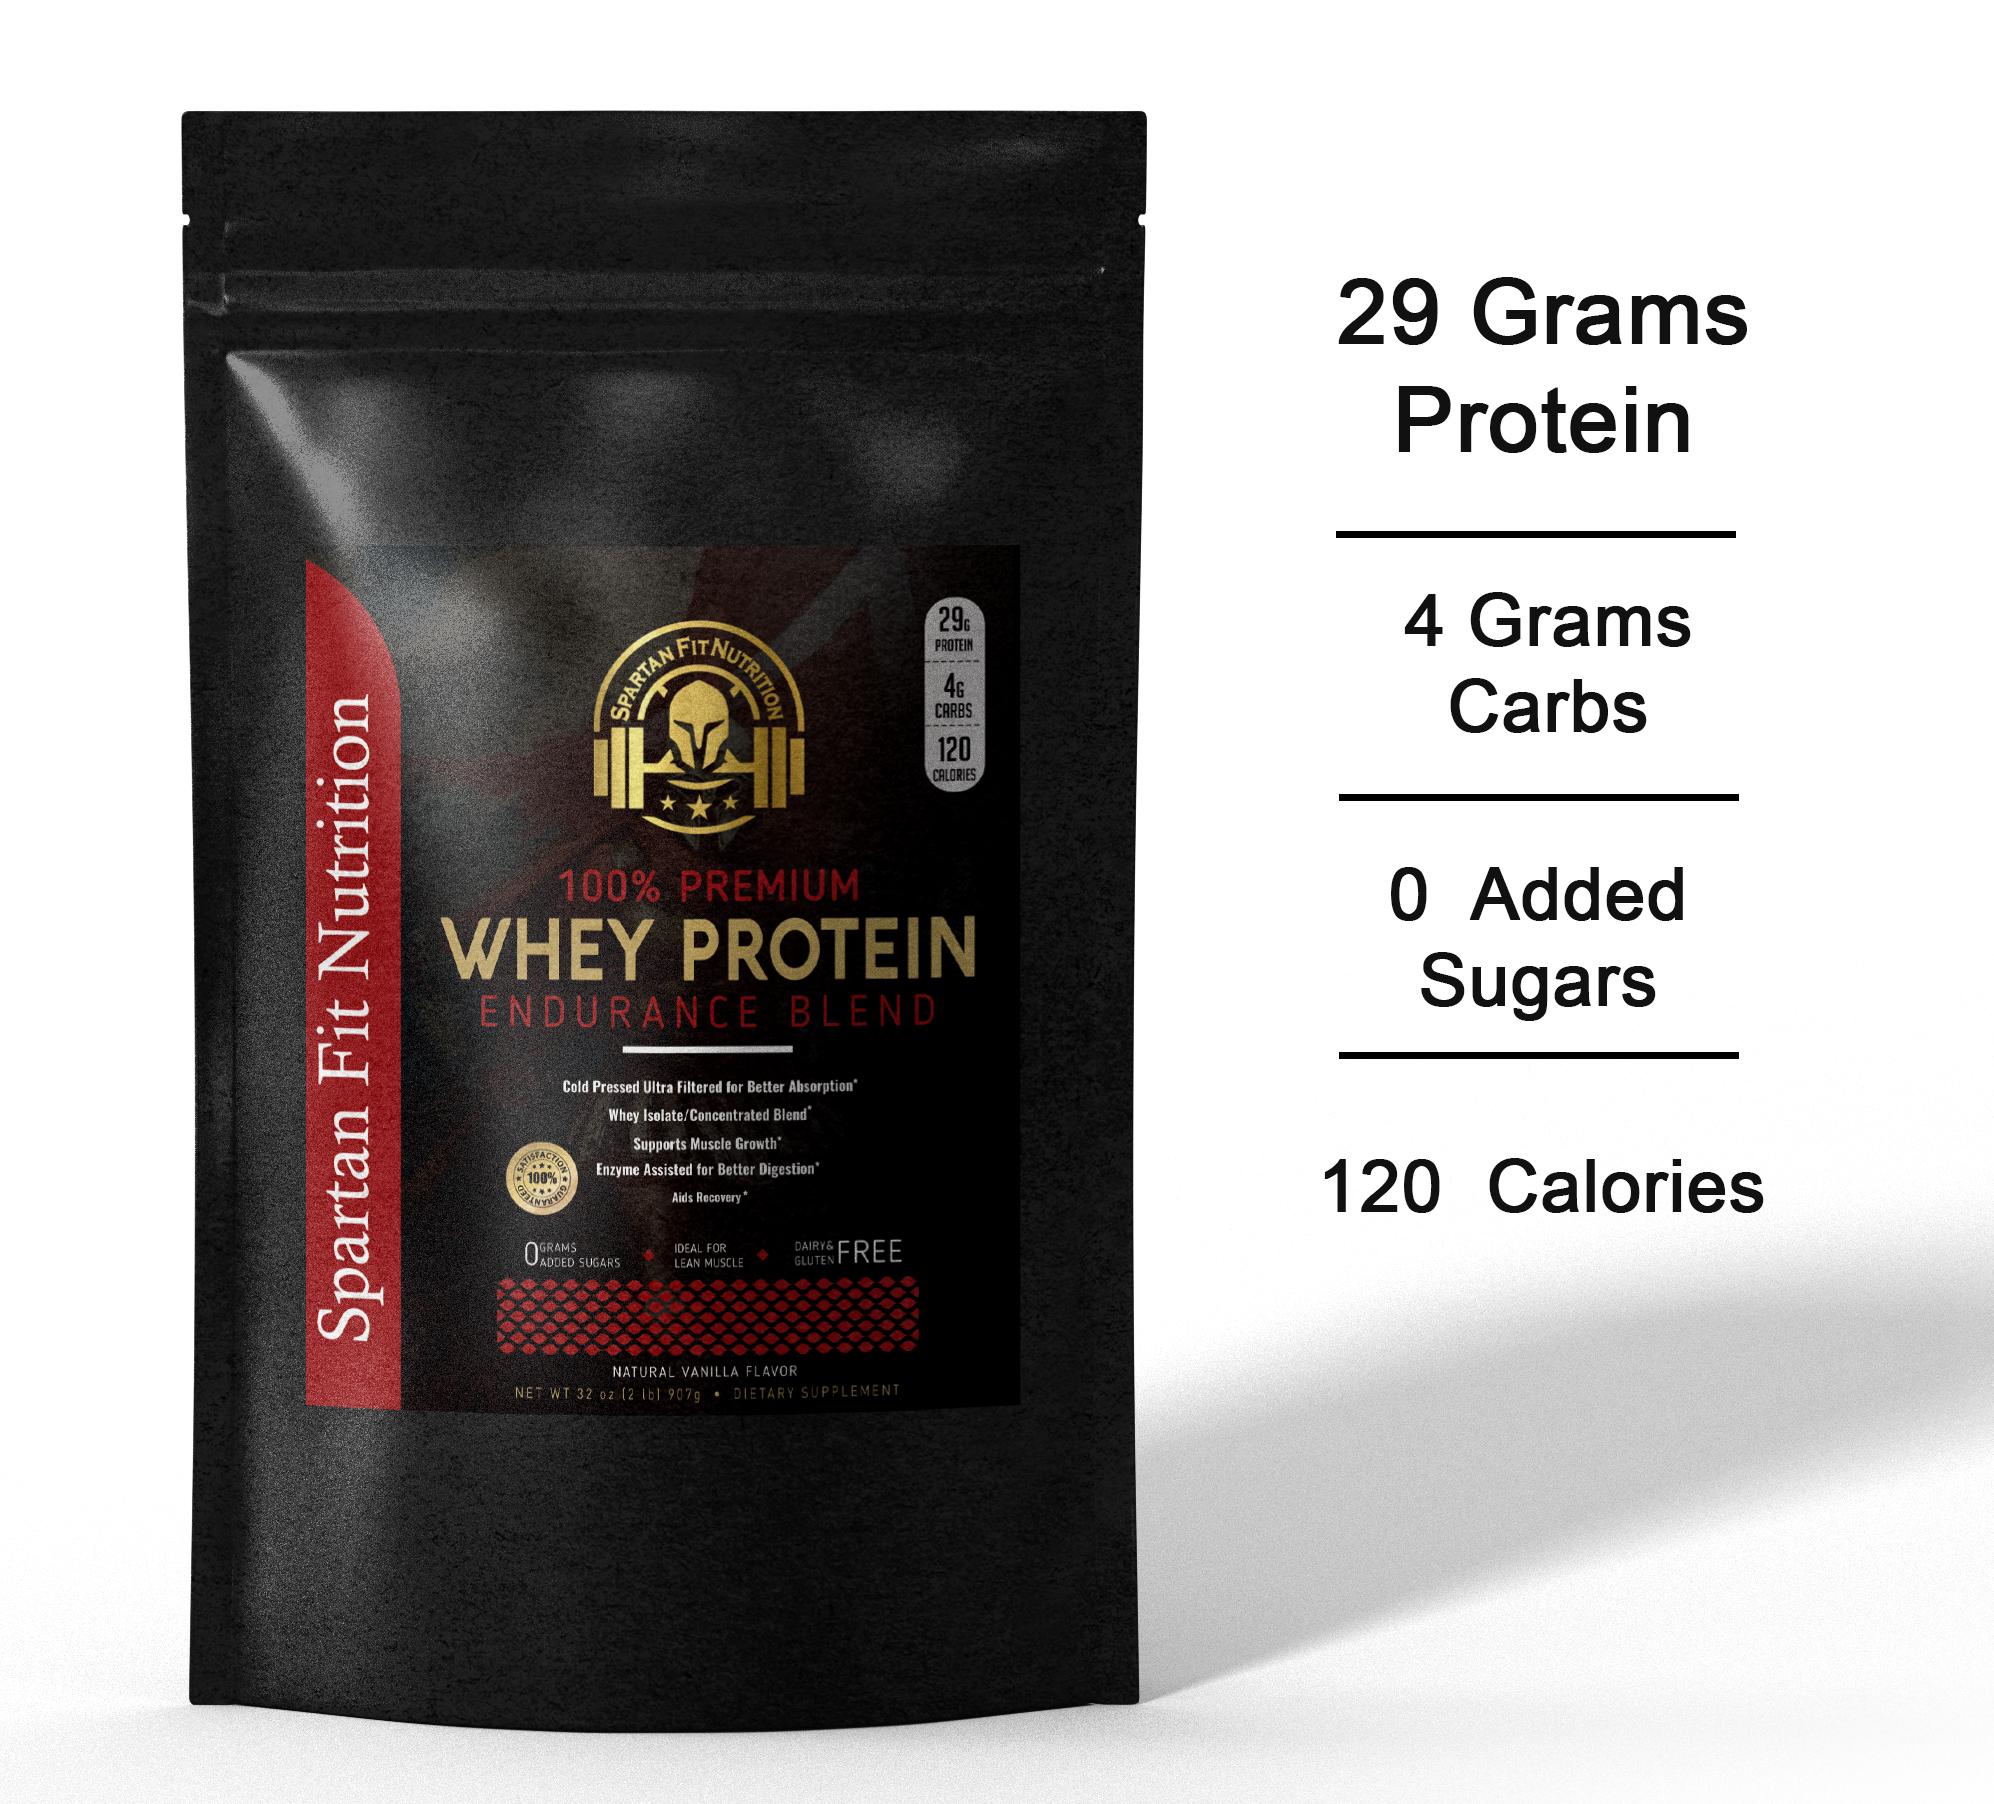 Protein Powder Bag 29 Grams of Protein 0 Added Sugar 0 Carbs